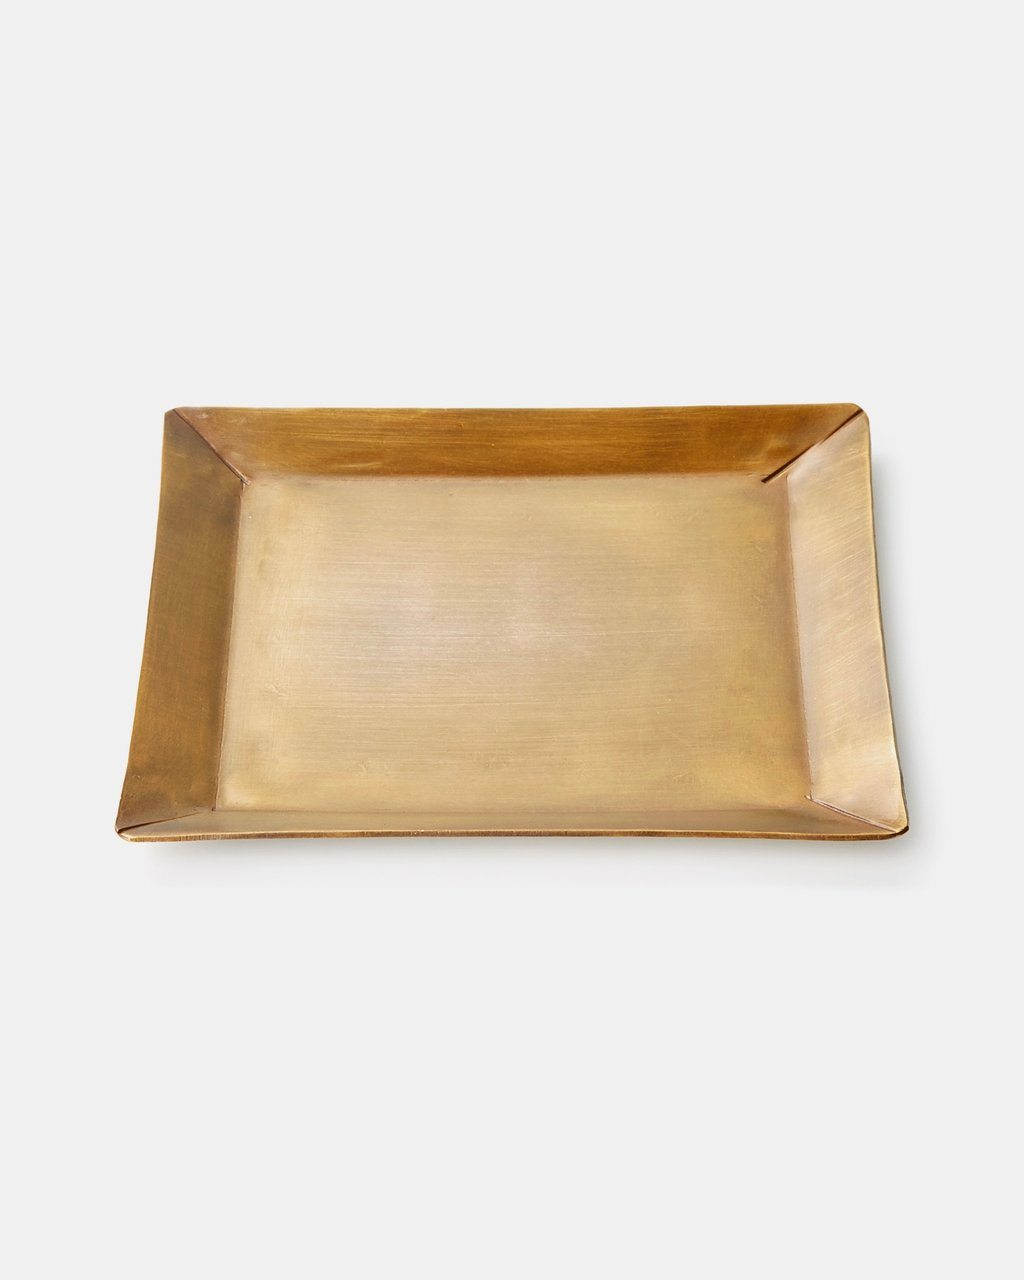 Fog Linen, Handmade Brass Rectangle Plate, One-Size- Placewares